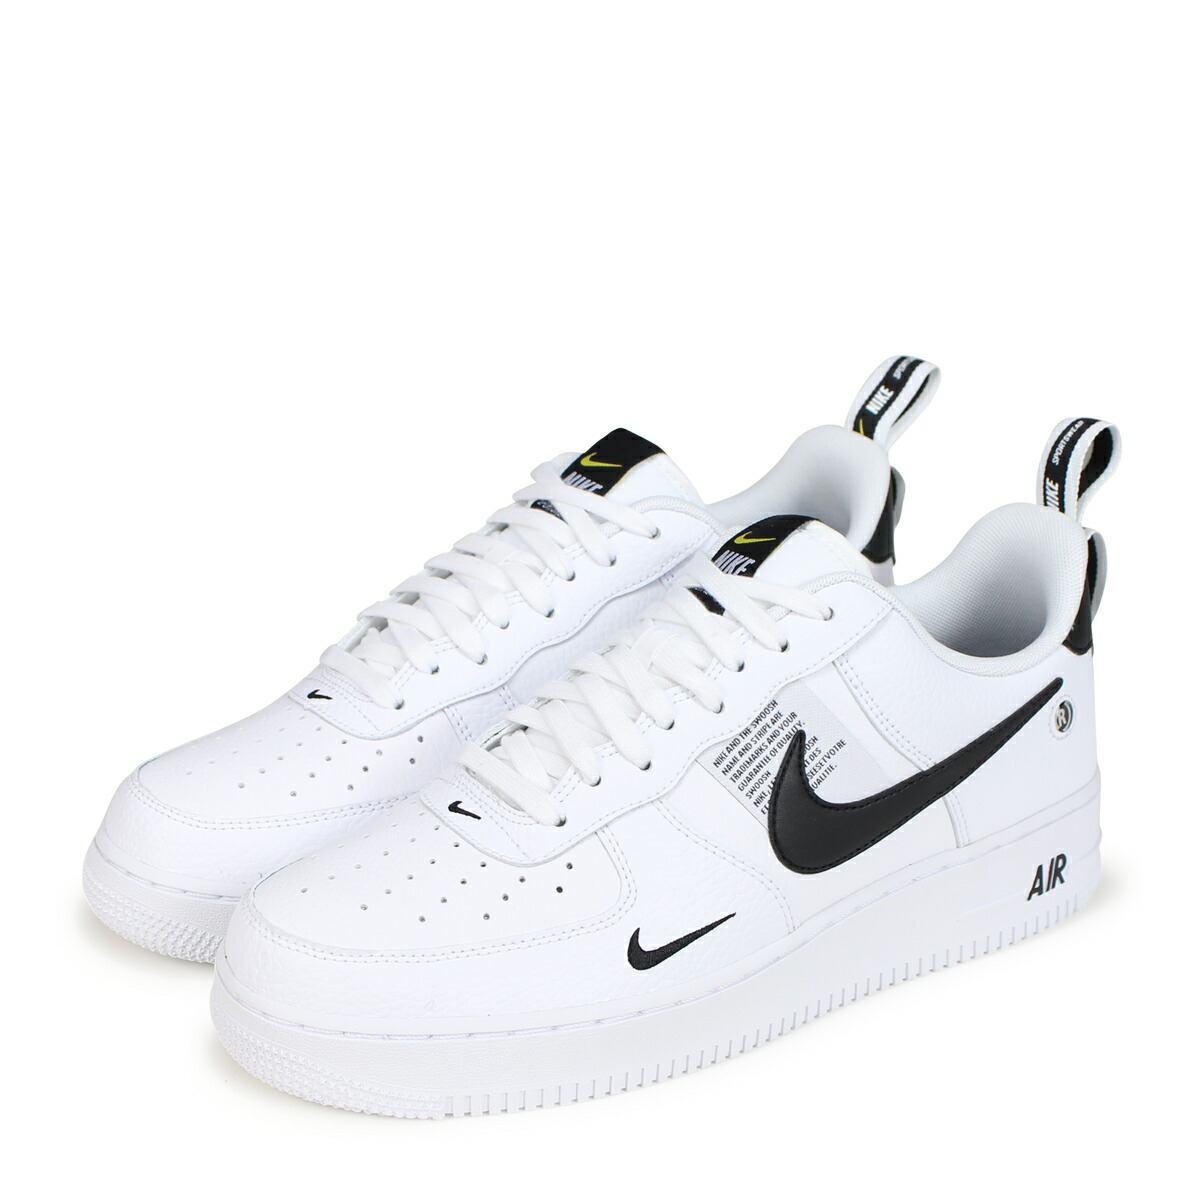 NIKE AIR FORCE 1 07 LV8 UTILITY Nike air force 1 sneakers men AJ7747 100 white